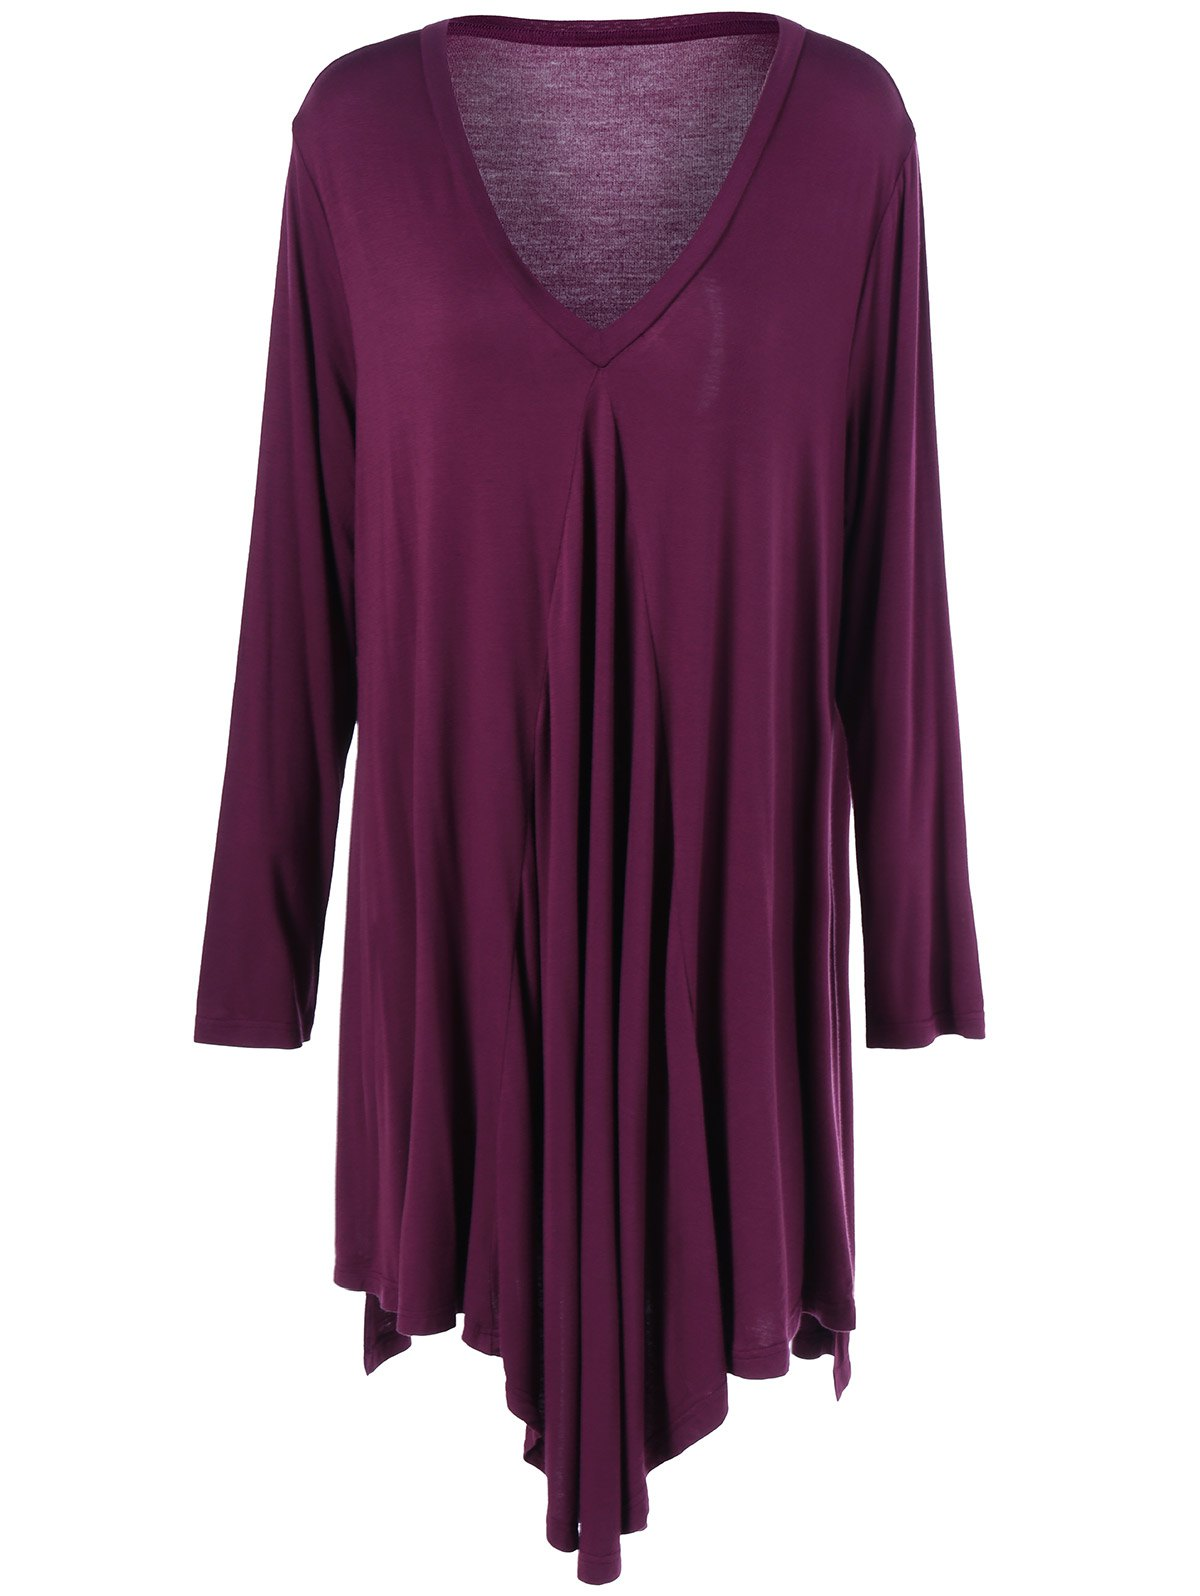 Plus Size Pleated Asymmetric Longline T-Shirt - PURPLISH RED 2XL